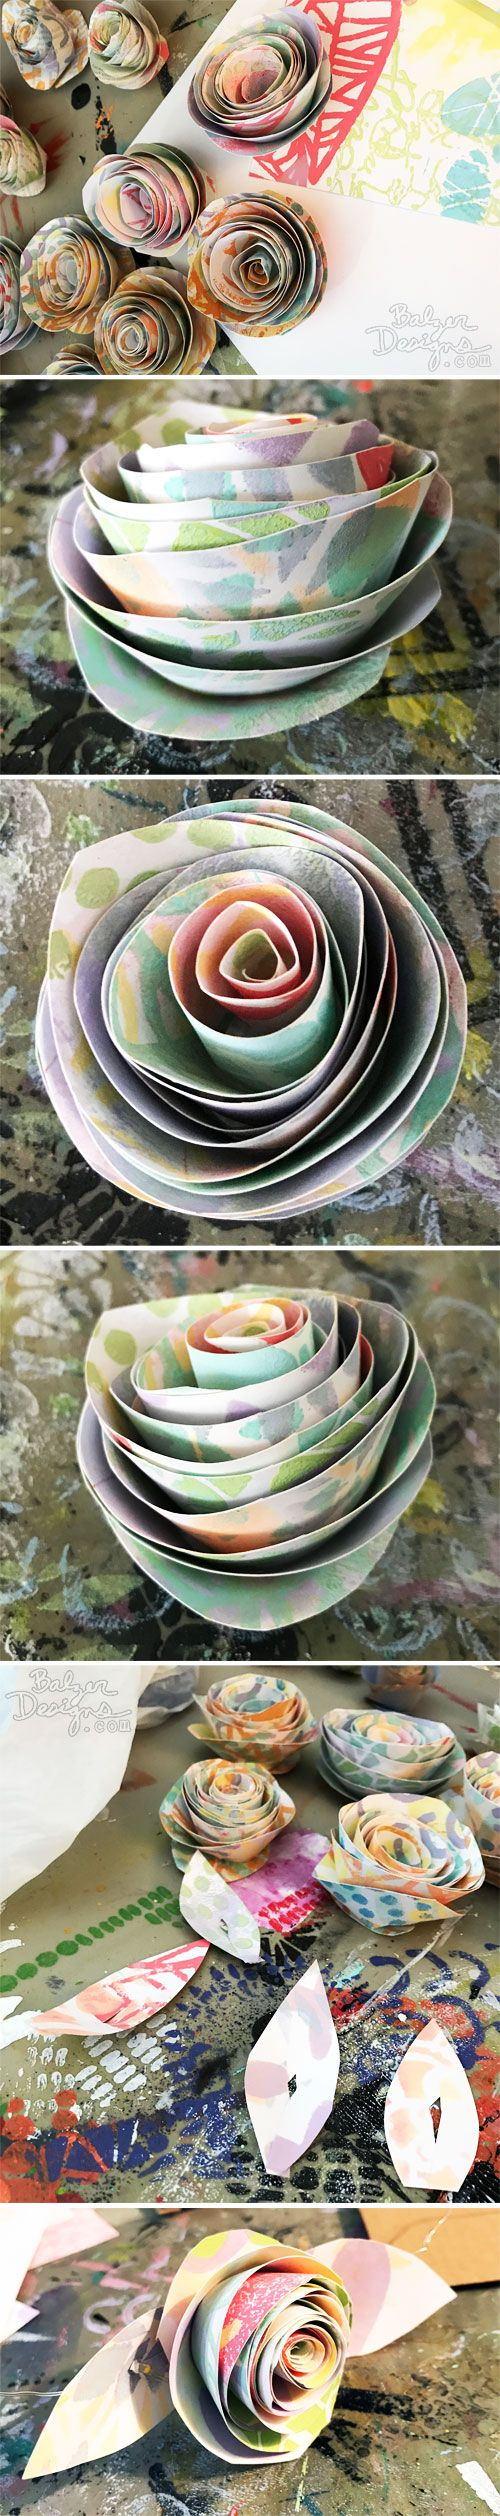 From the Balzer Designs Blog Rolled Paper Rose Garland with Suzanne